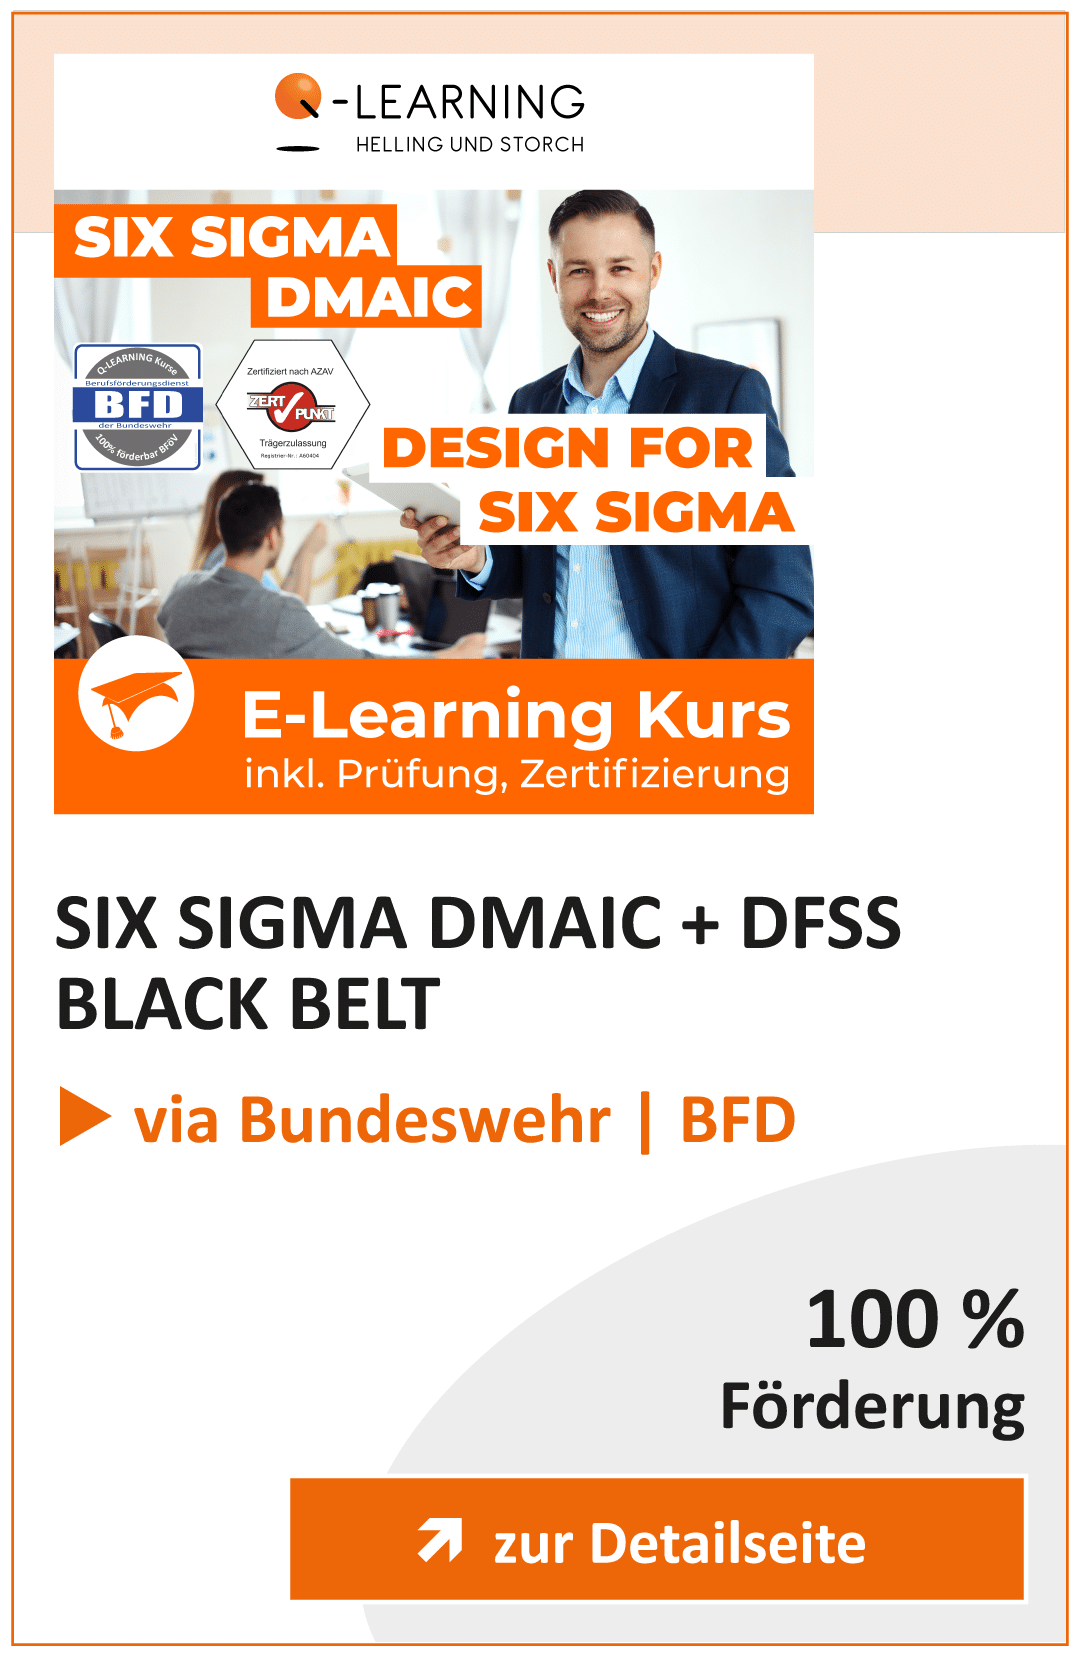 Produktbox SIX SIGMA DMAIC DESIGN FOR SIX SIGMA BFD Info